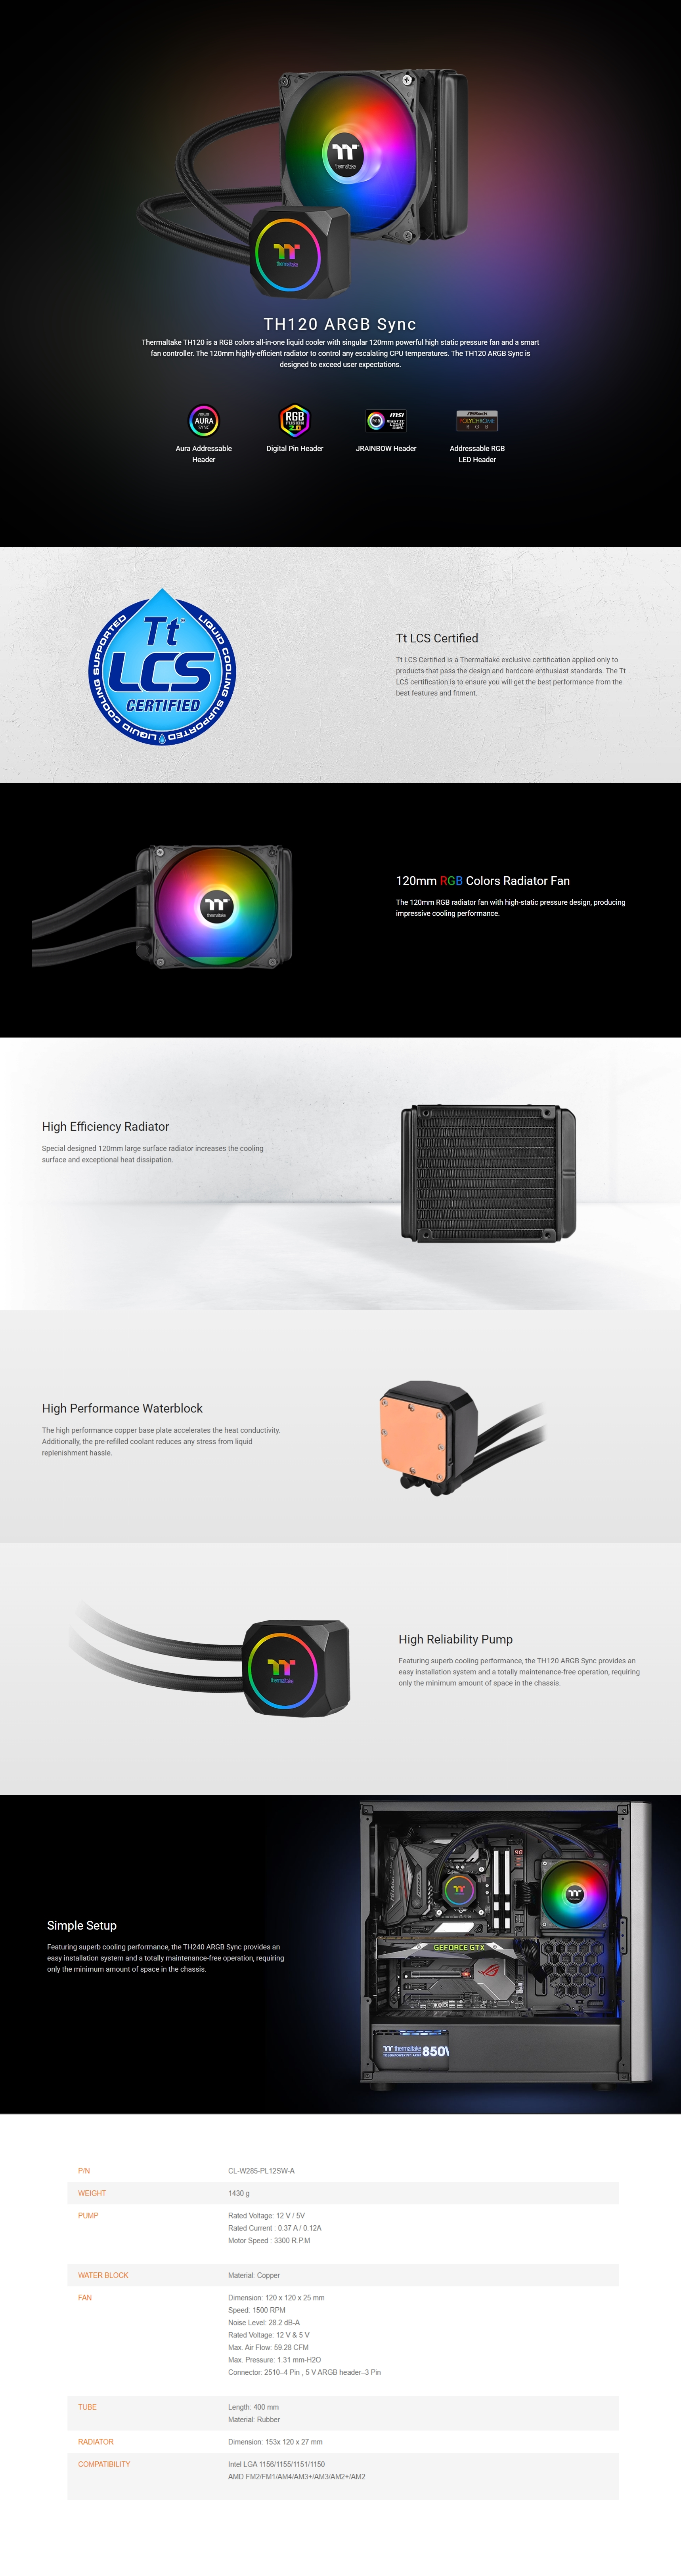 A large marketing image providing additional information about the product Thermaltake TH120 ARGB AIO Liquid CPU Cooler - Additional alt info not provided